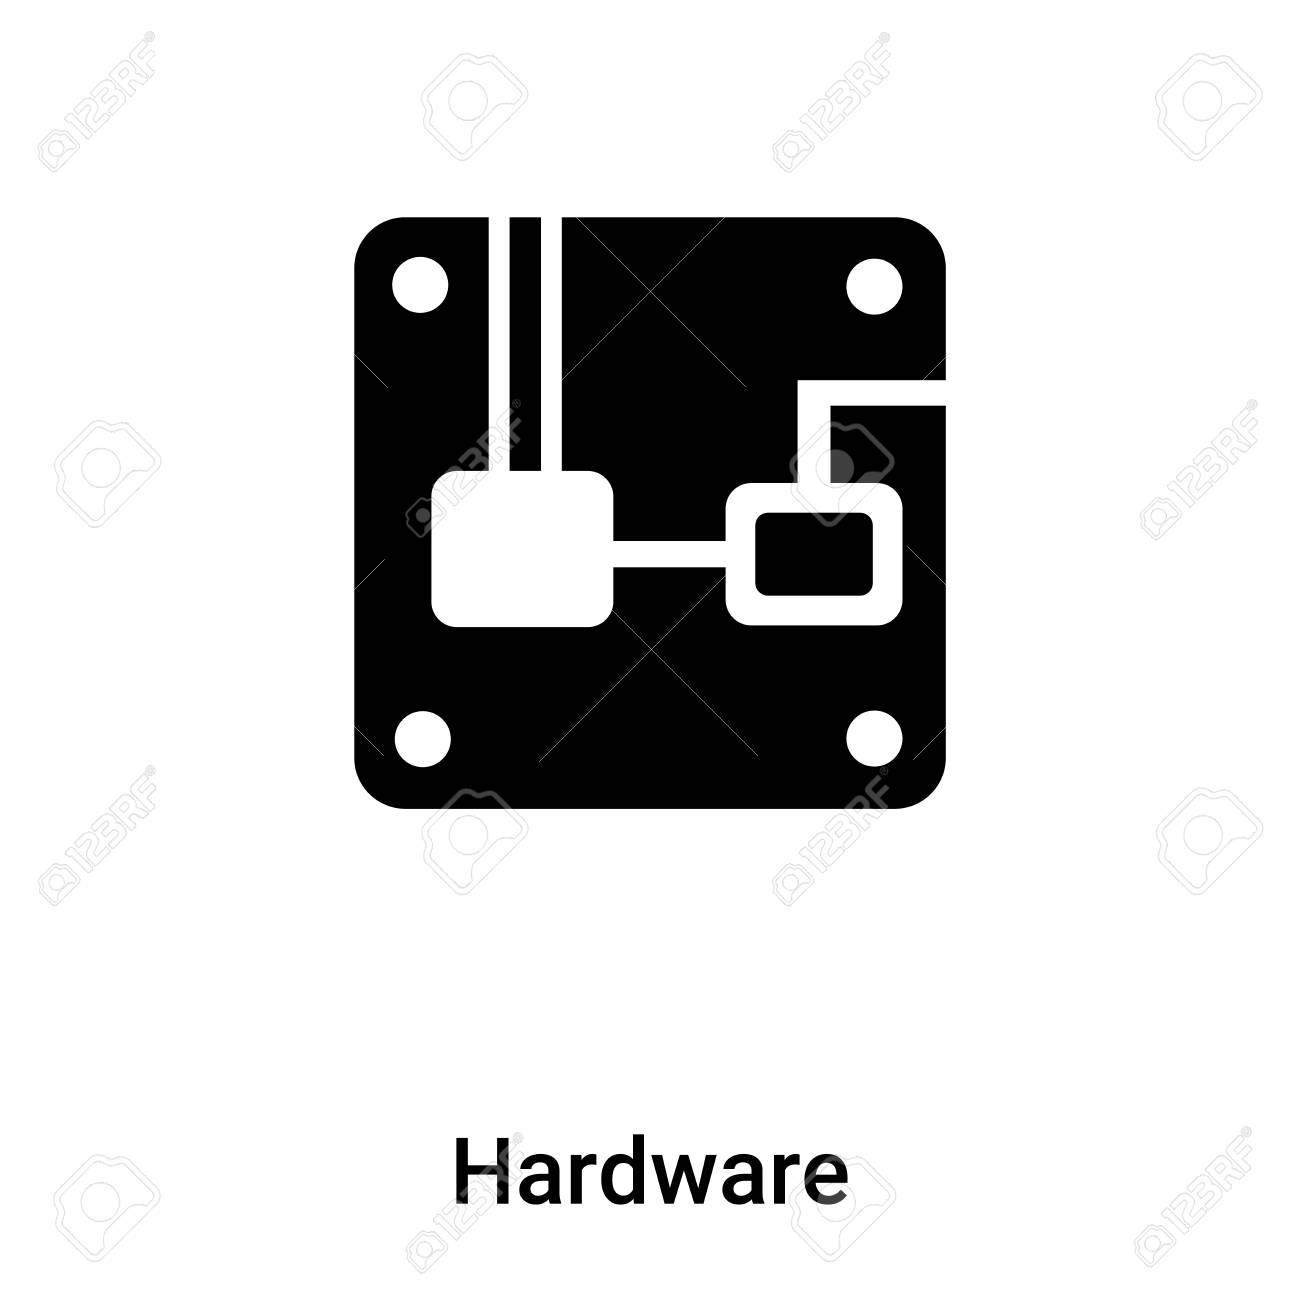 hardware icon vector isolated on white background logo concept royalty free cliparts vectors and stock illustration image 108882756 hardware icon vector isolated on white background logo concept